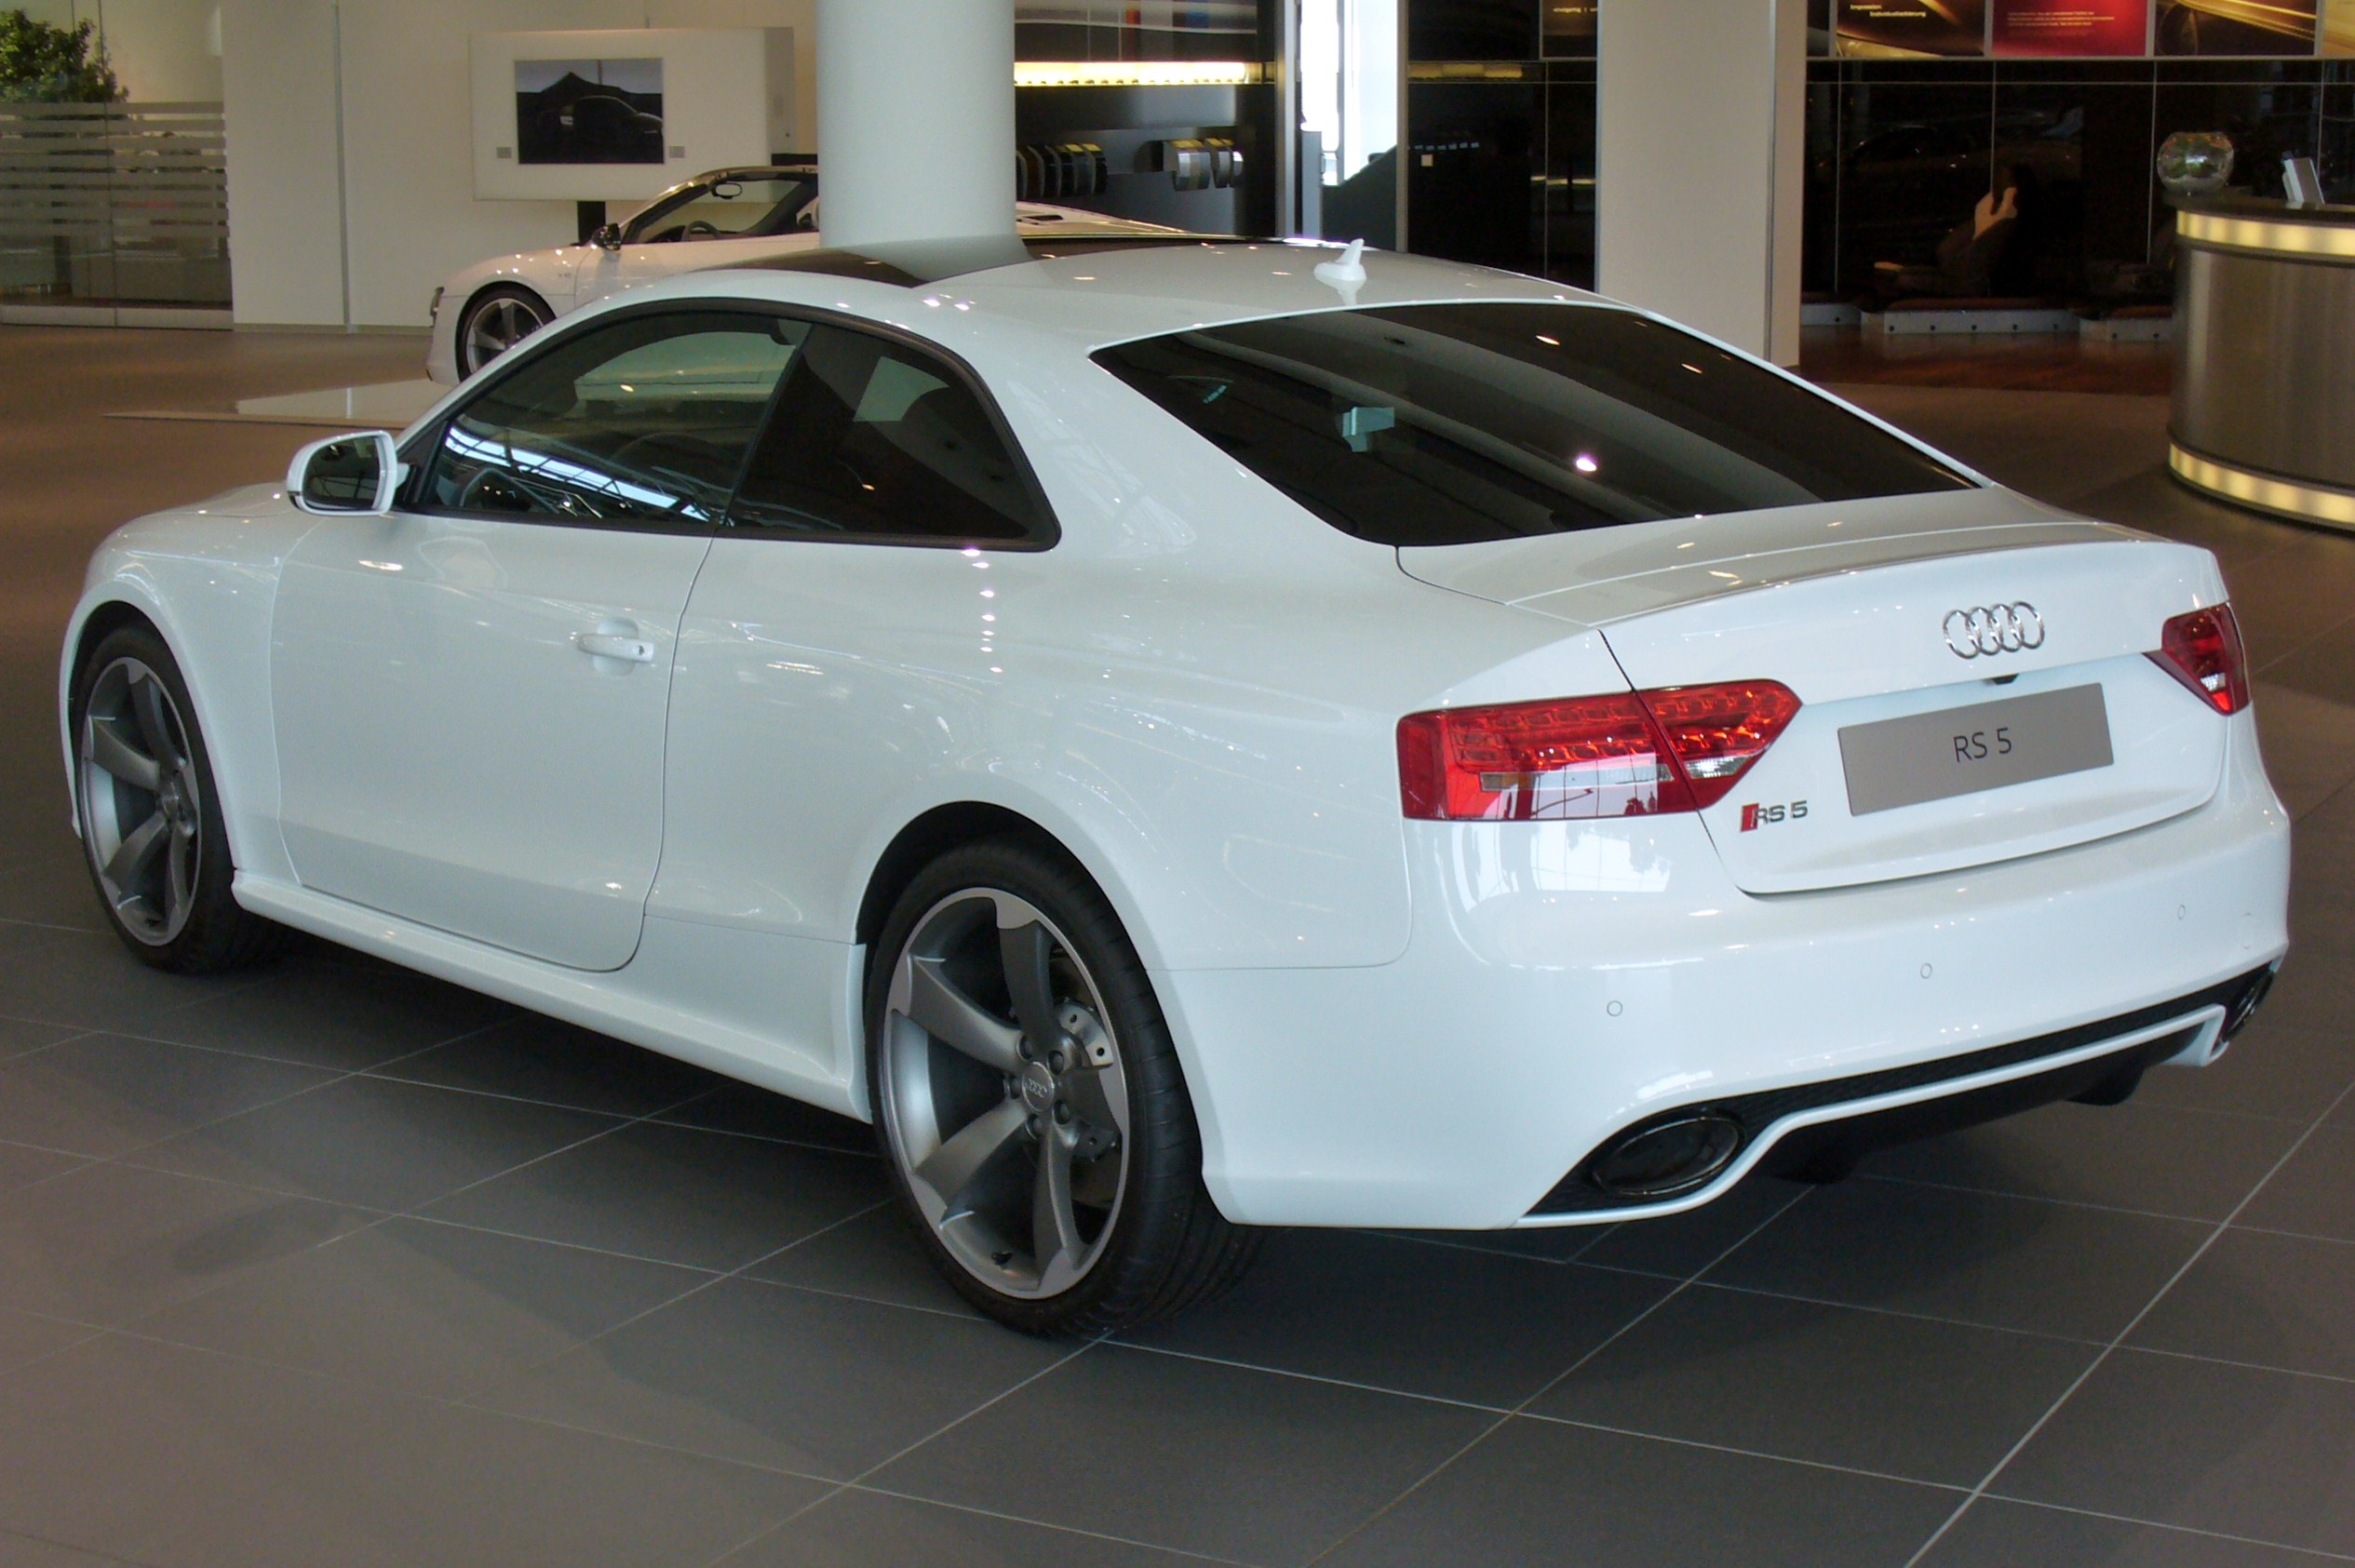 2014 Audi S5 sportback (8ta) – pictures, information and specs ...